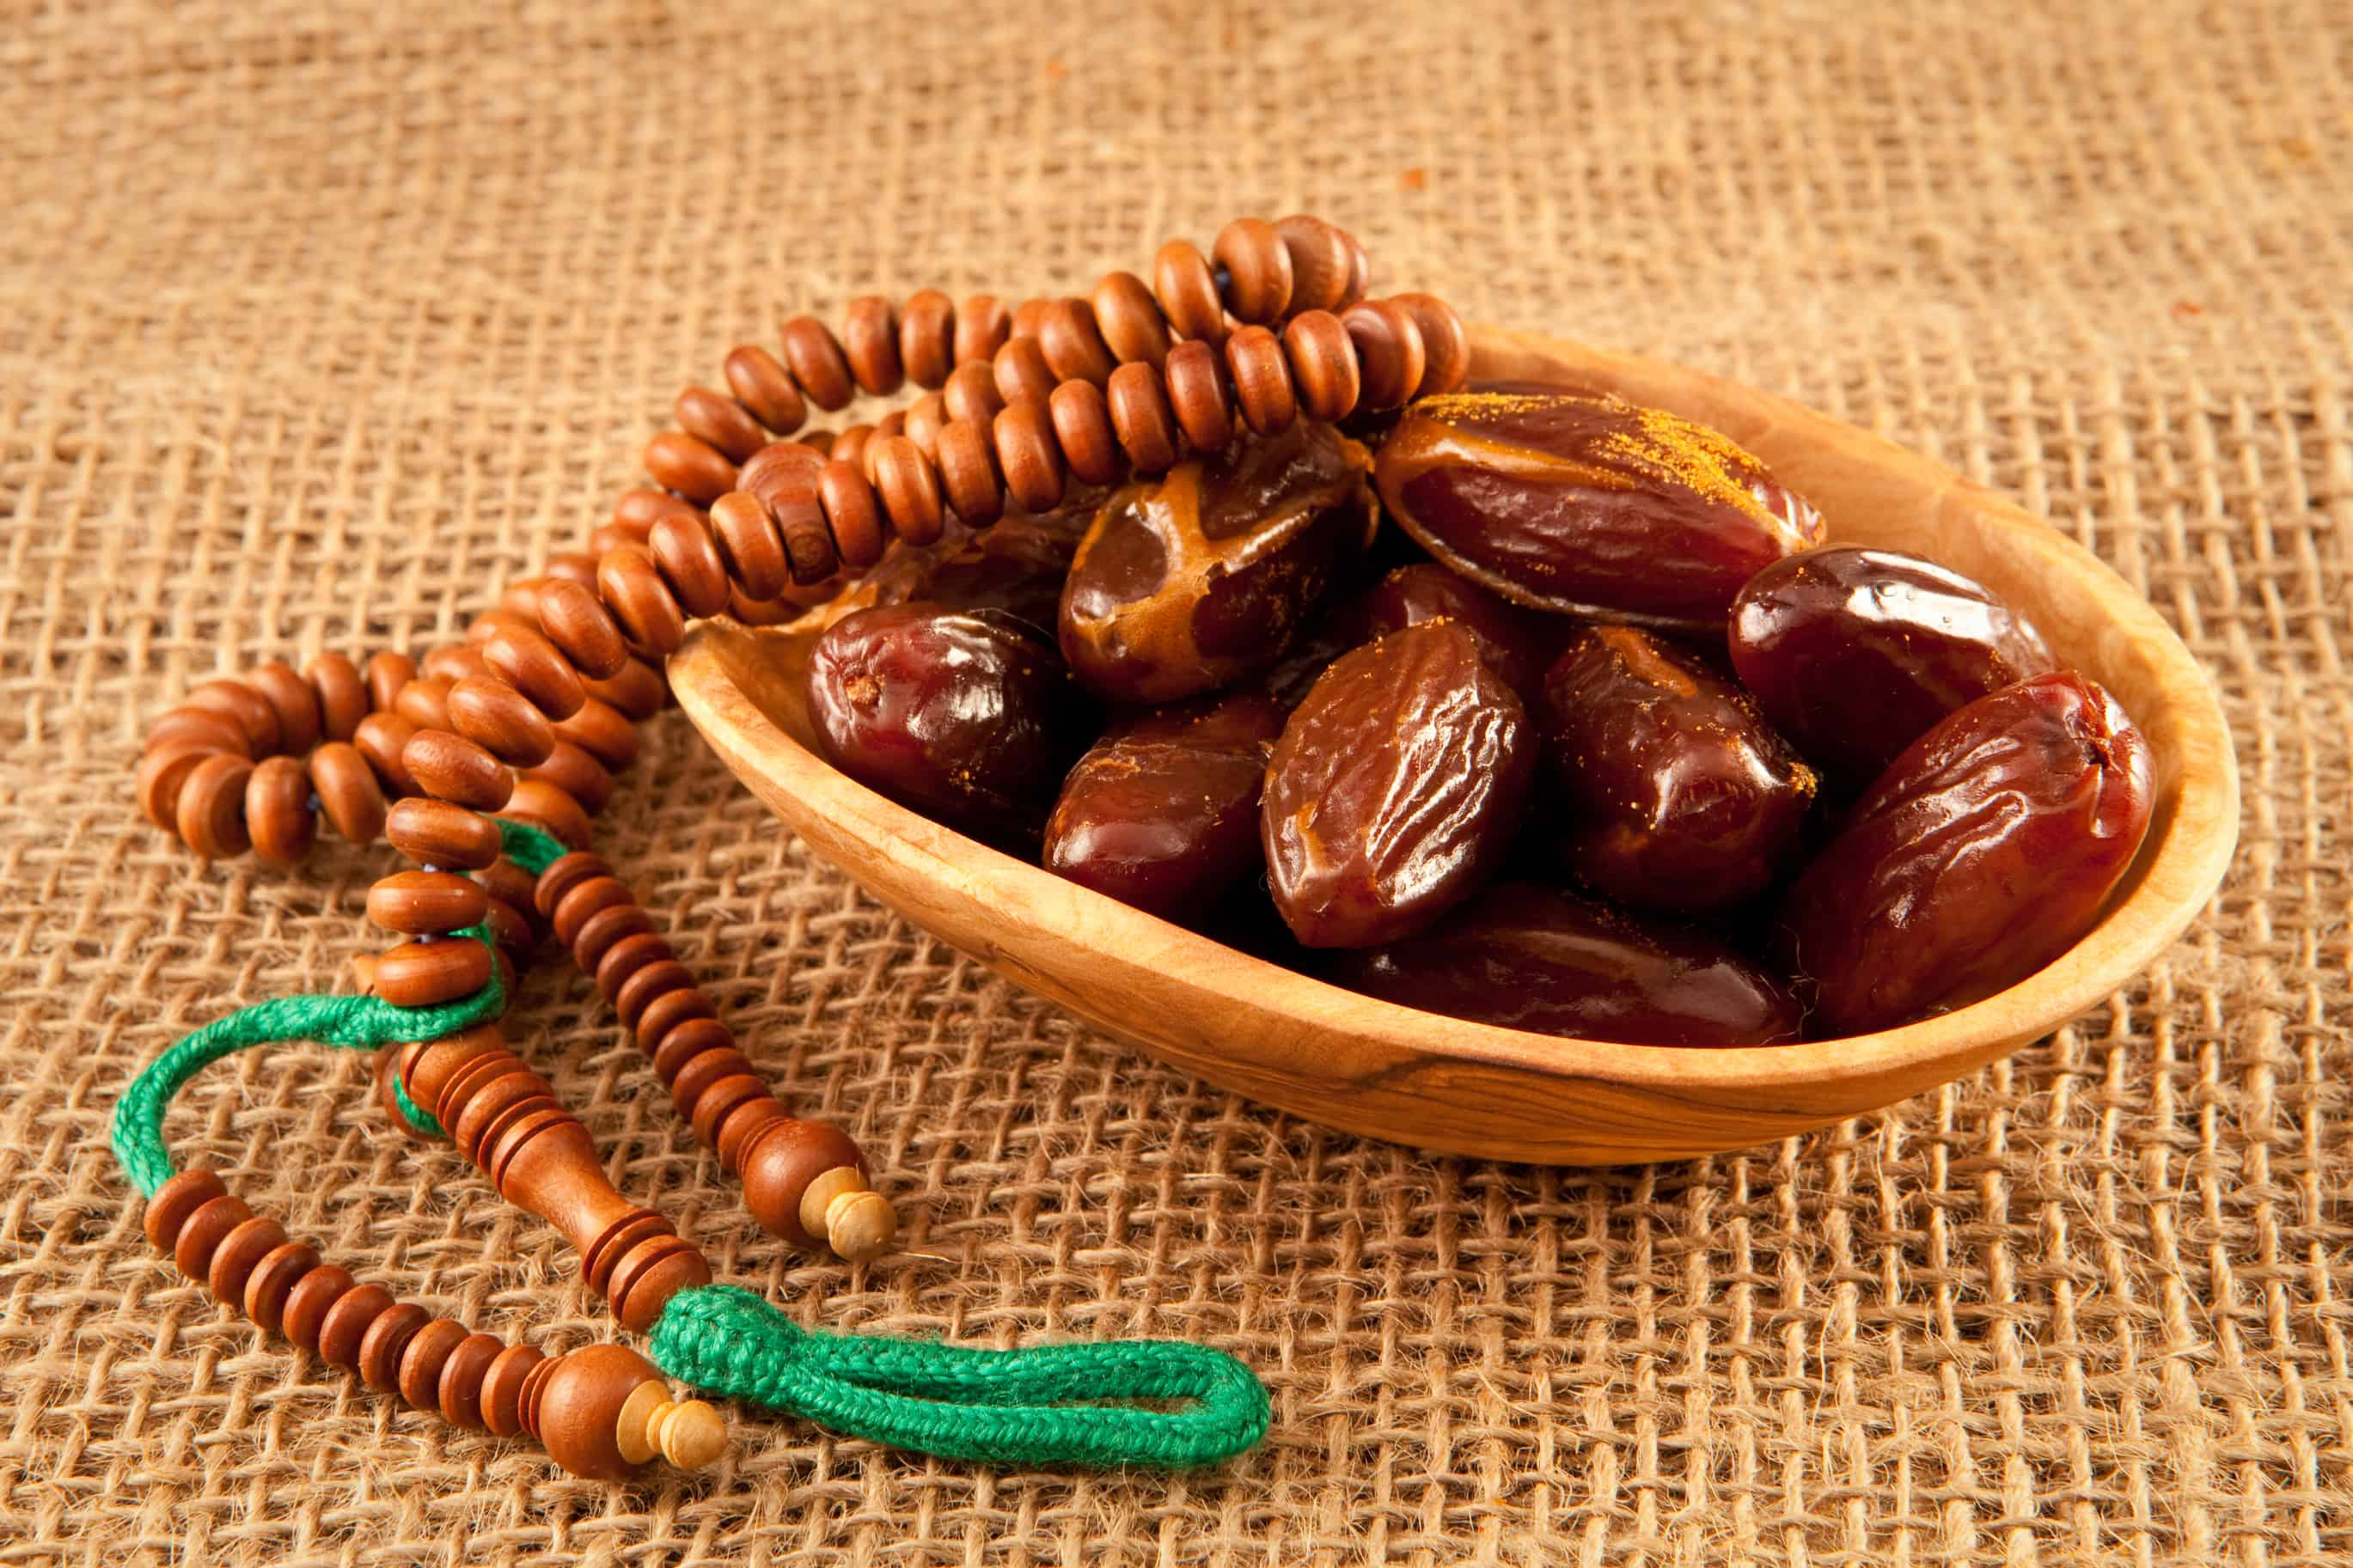 Eating Dates As Part Of Iftar And Suhoor Is Sunnah And For A Good Reason  Too! Dates Have Fibre To Keep Us Full And A Healthy Dose Of Natural Sugars  To Keep